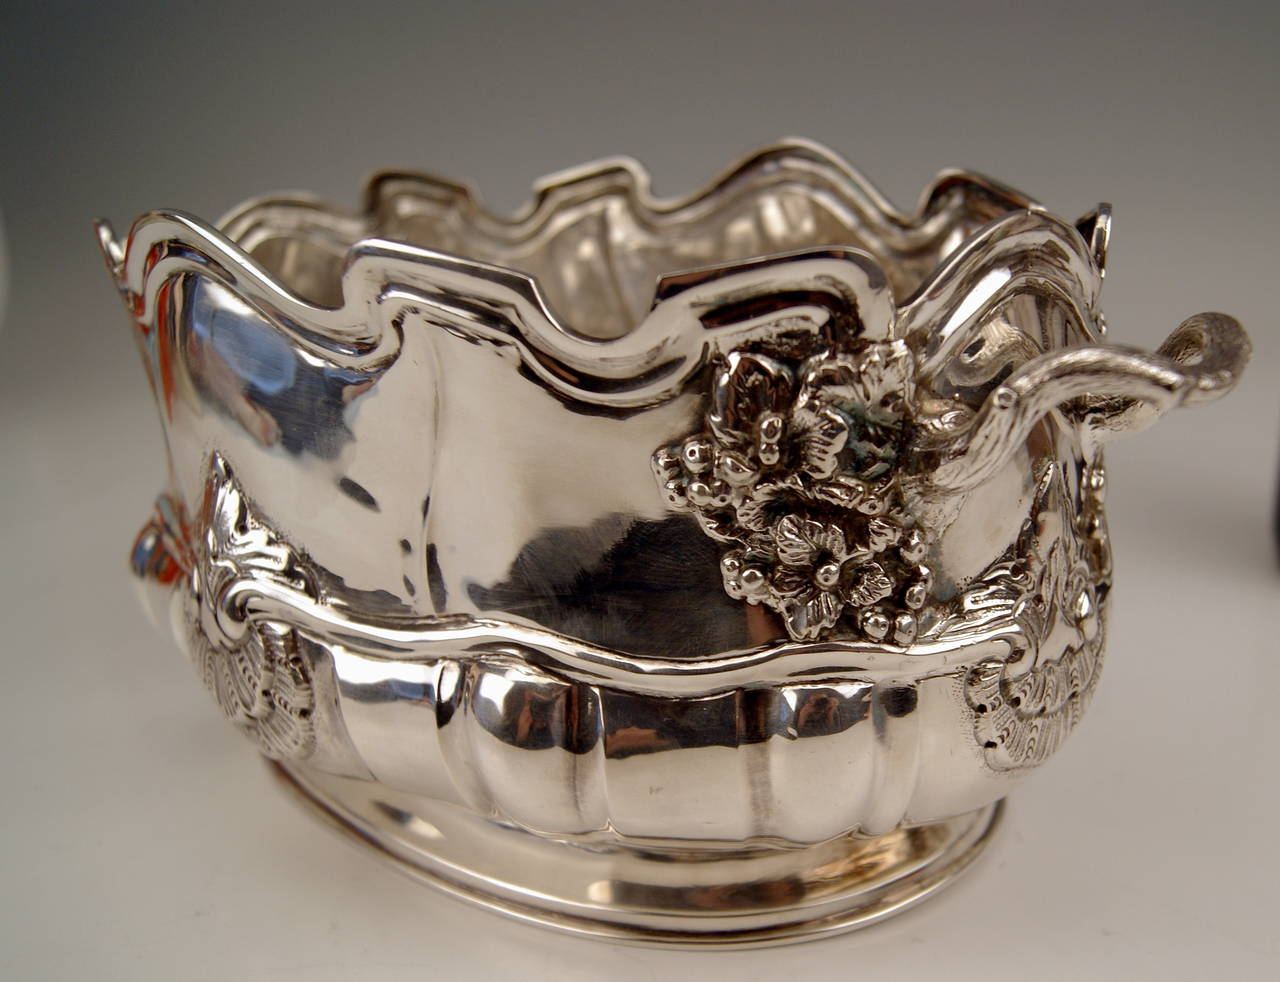 Silver Gorgeous Wine Cooler or Bottle Holder Vintage  /  made in Switzerland (Geneva).   Excellently manufactured nicest bowl made of massive silver, with two handles  (  =  highest manufacturing quality  !) :  The bowl can be used as cooler for